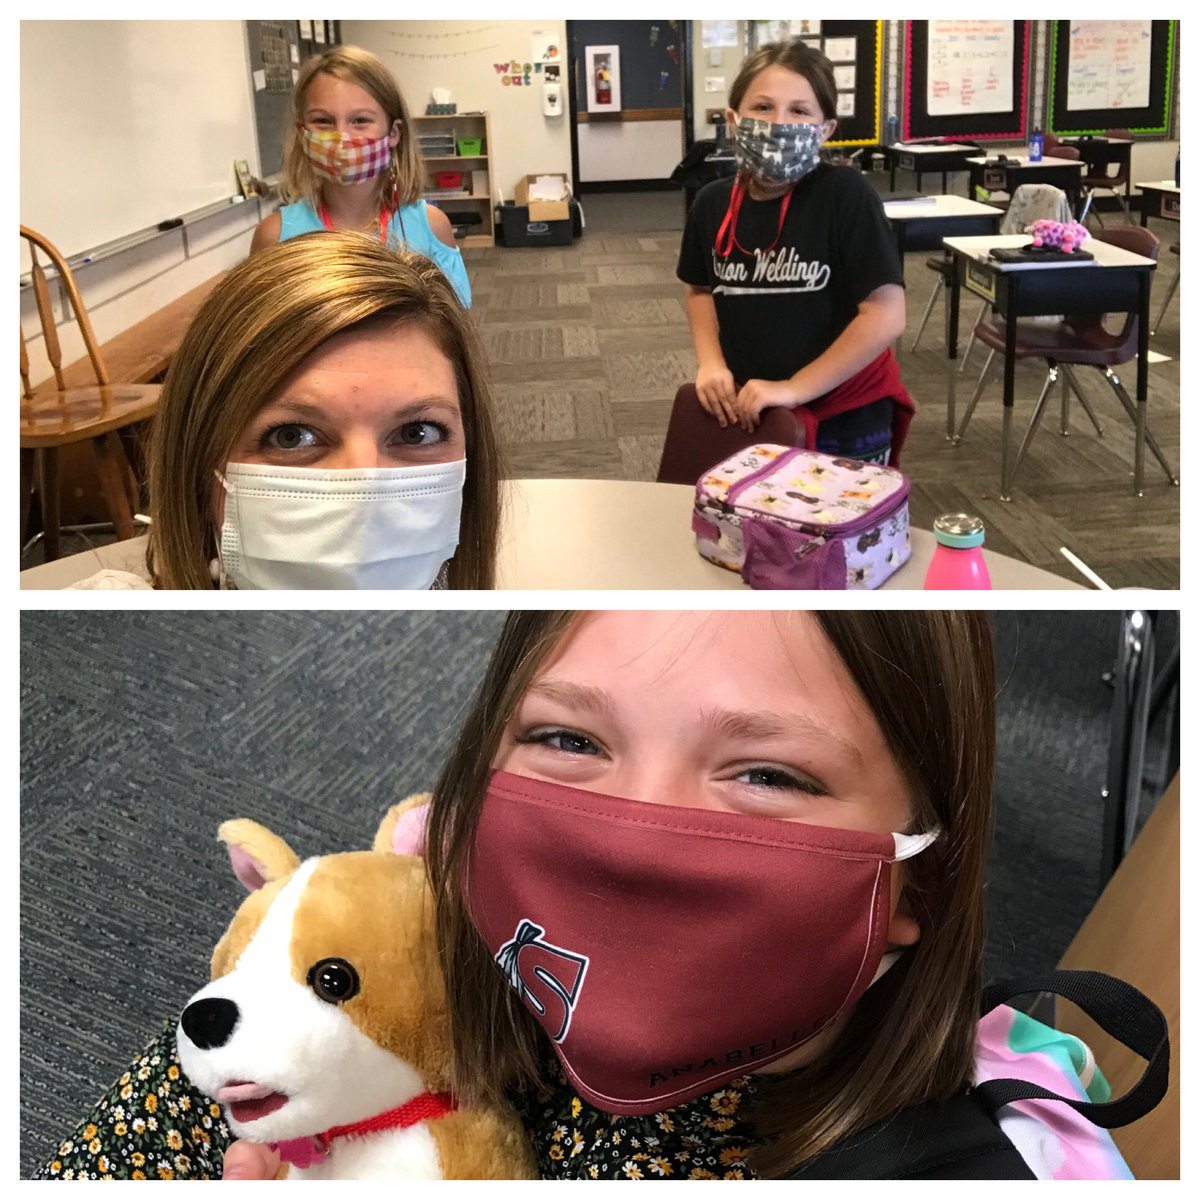 Lunch with two sweet girls and a couple of extra fluffy friends make for a great Monday! #RewardDay #GoodBehaviorCoupons #LPSelma https://t.co/uK0Qmd1FTF